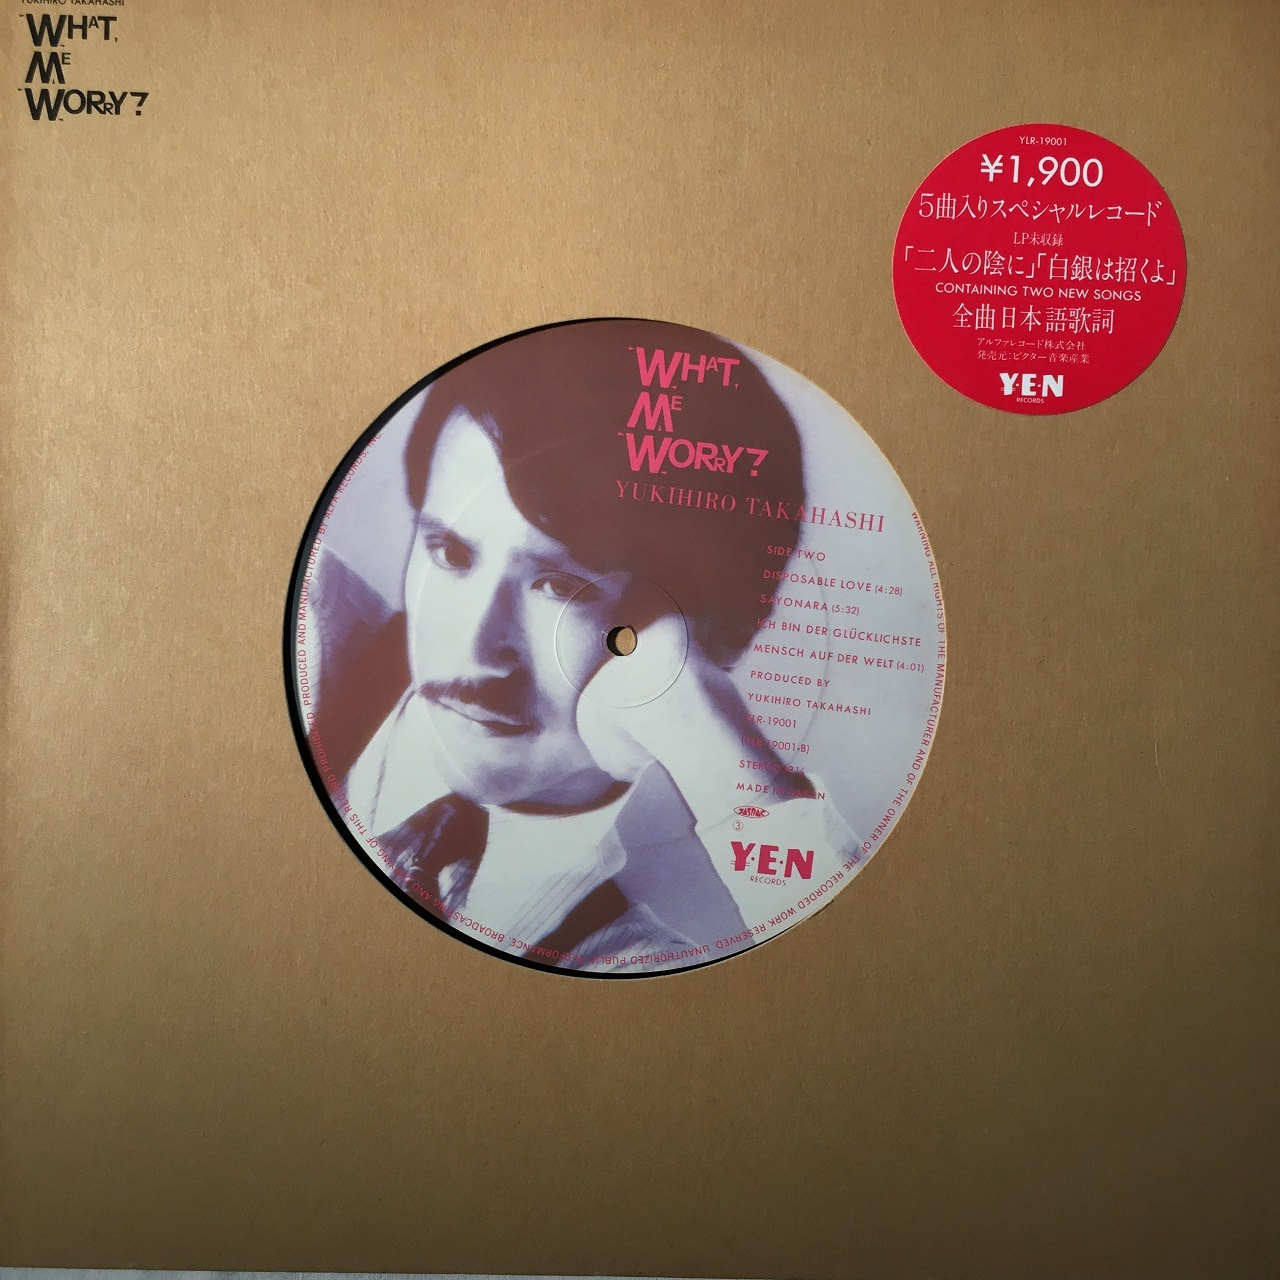 【12inch・国内盤】高橋幸宏 / What, Me Worry?